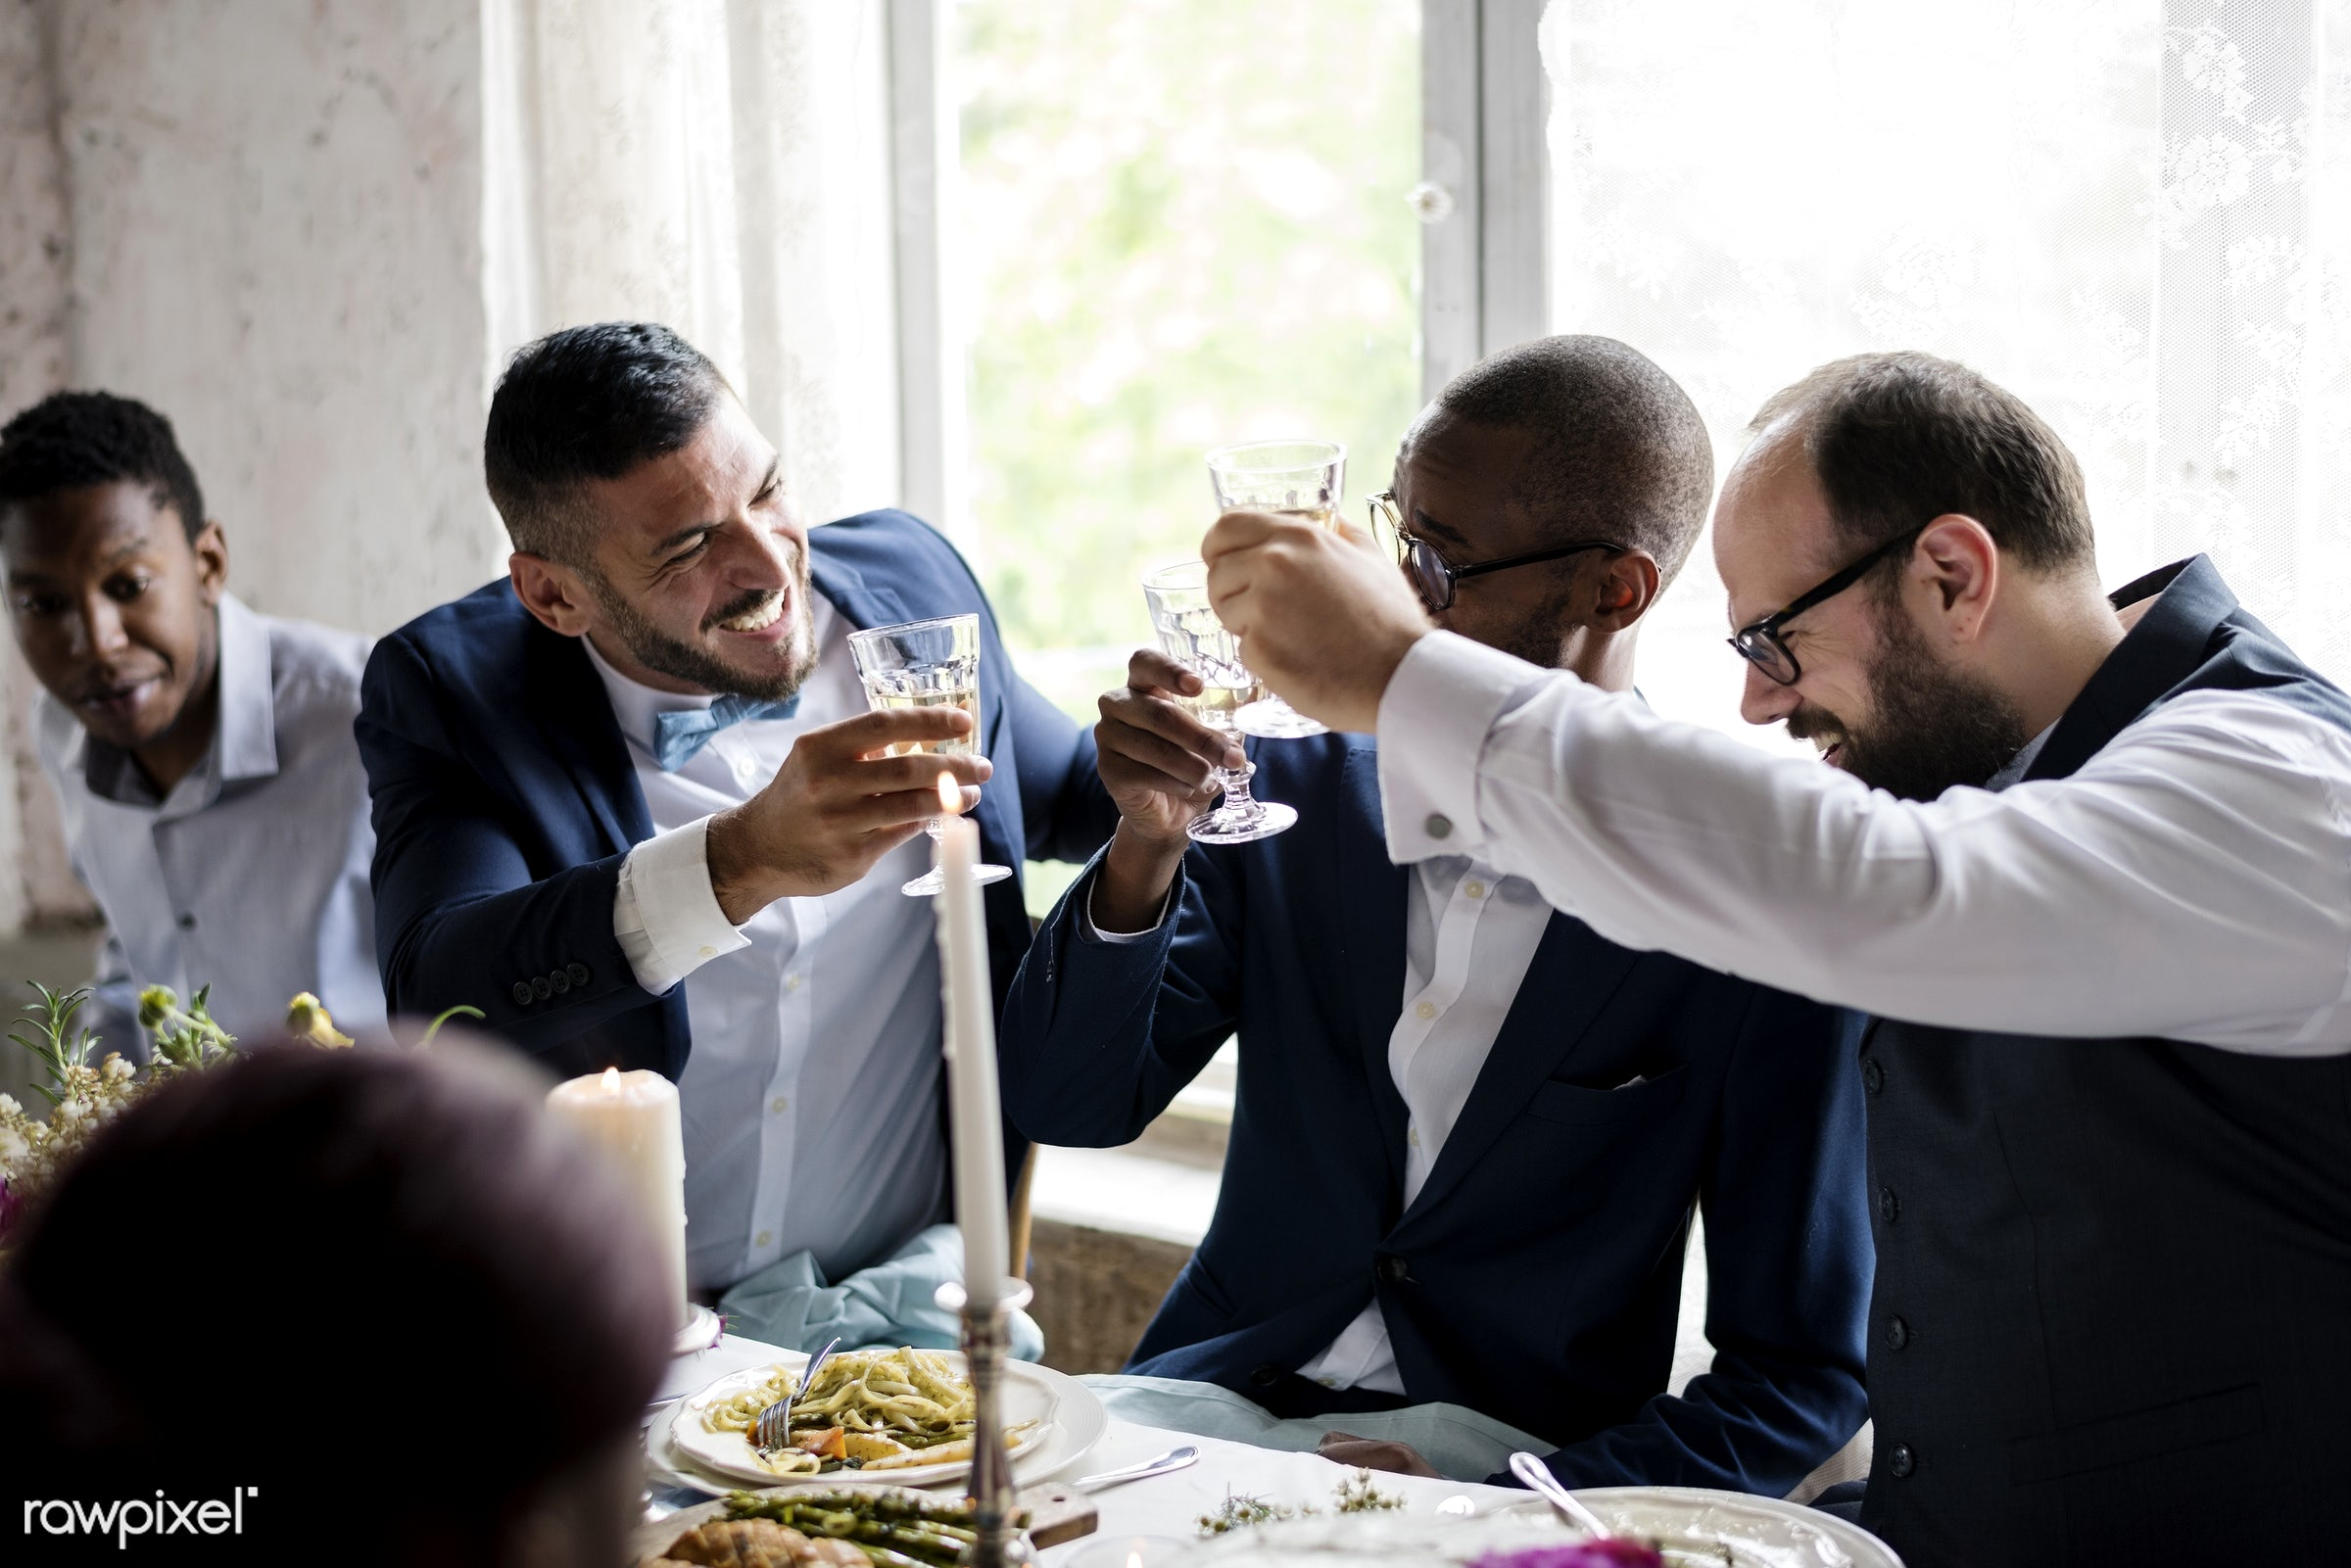 glasses, holding, occasion, congratulations, people, together, love, married, friends, congrats, hands, gather, drink, glass...